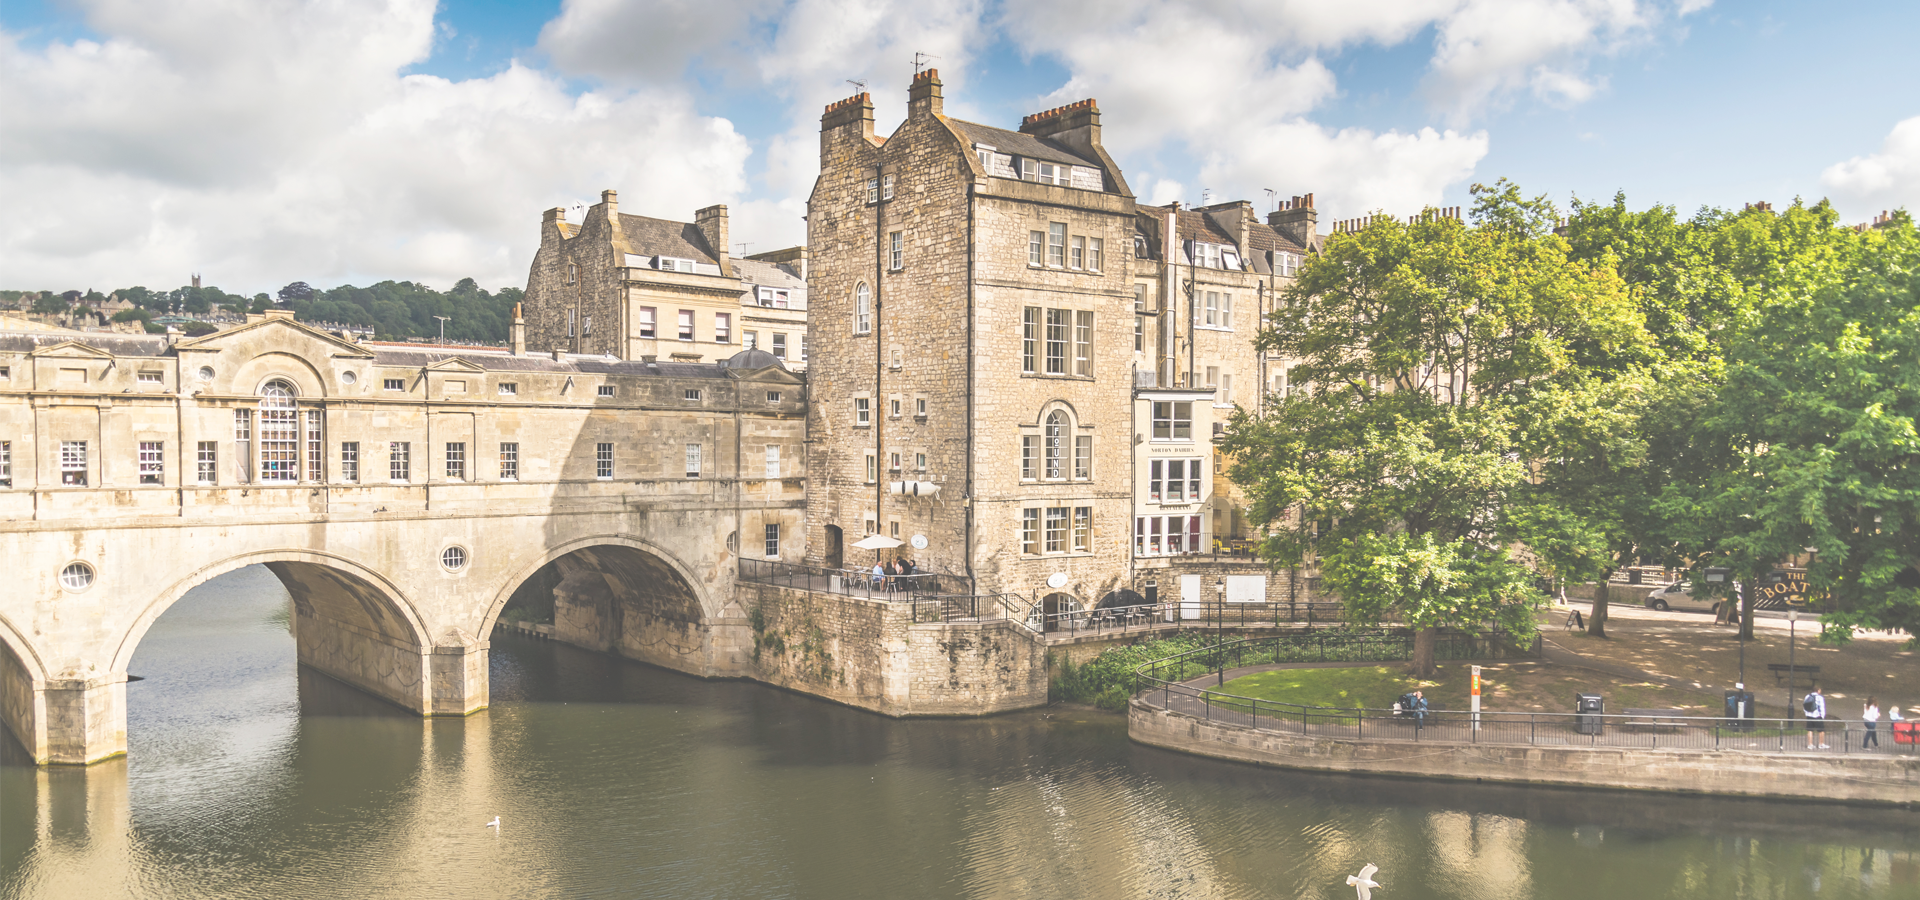 Peer-to-peer advisory in Bath, Bath and North East Somerset, England, Great Britain